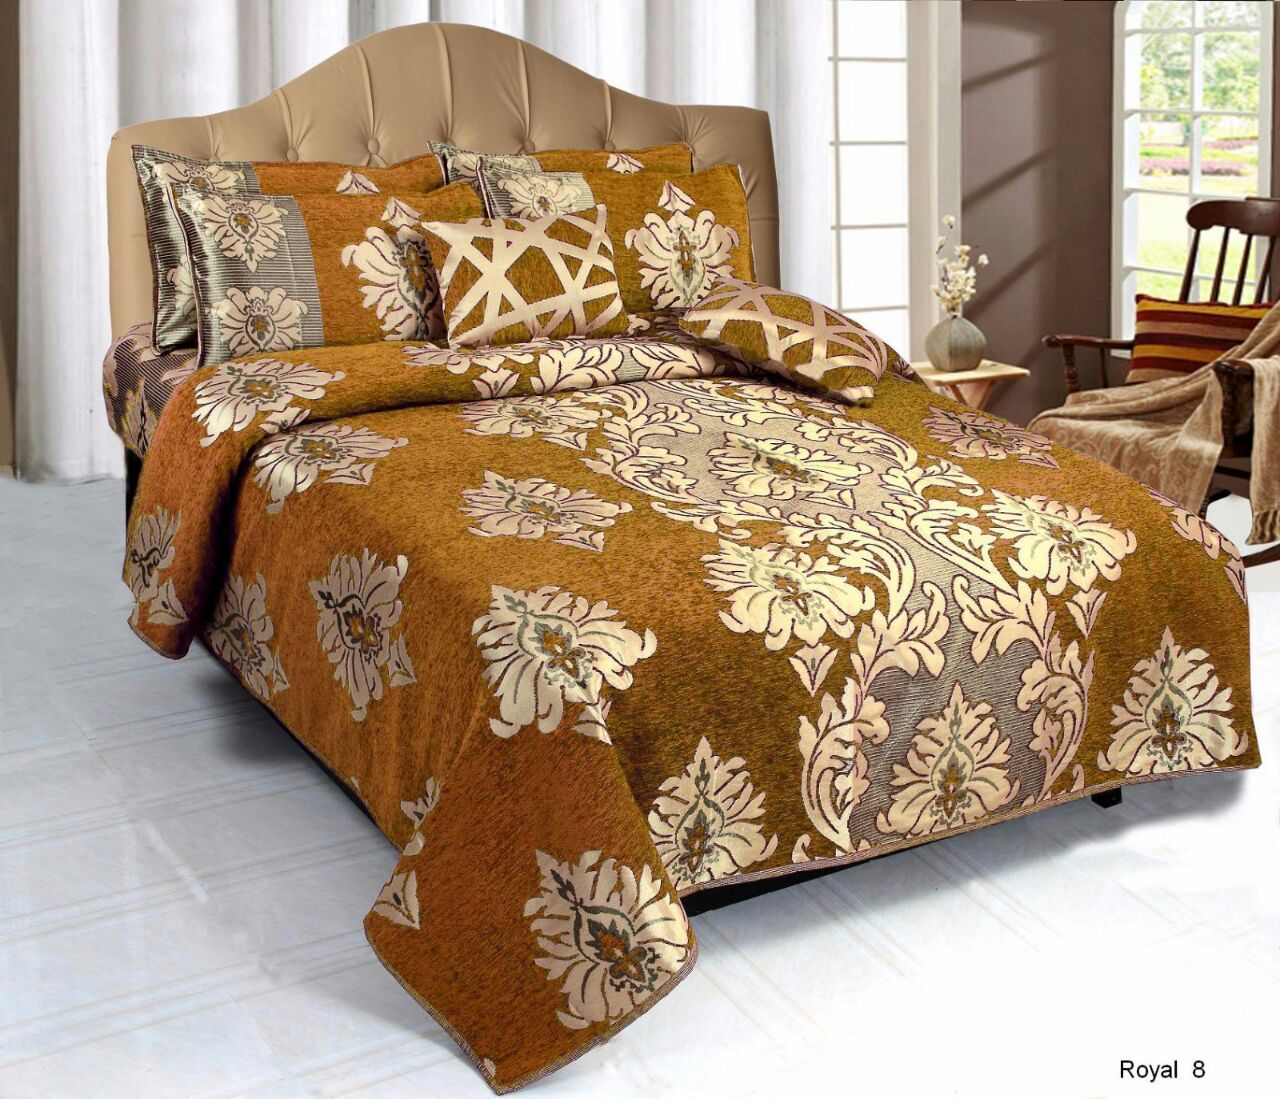 Crown Pattern Heavy Chenille Bedcovers - Golden